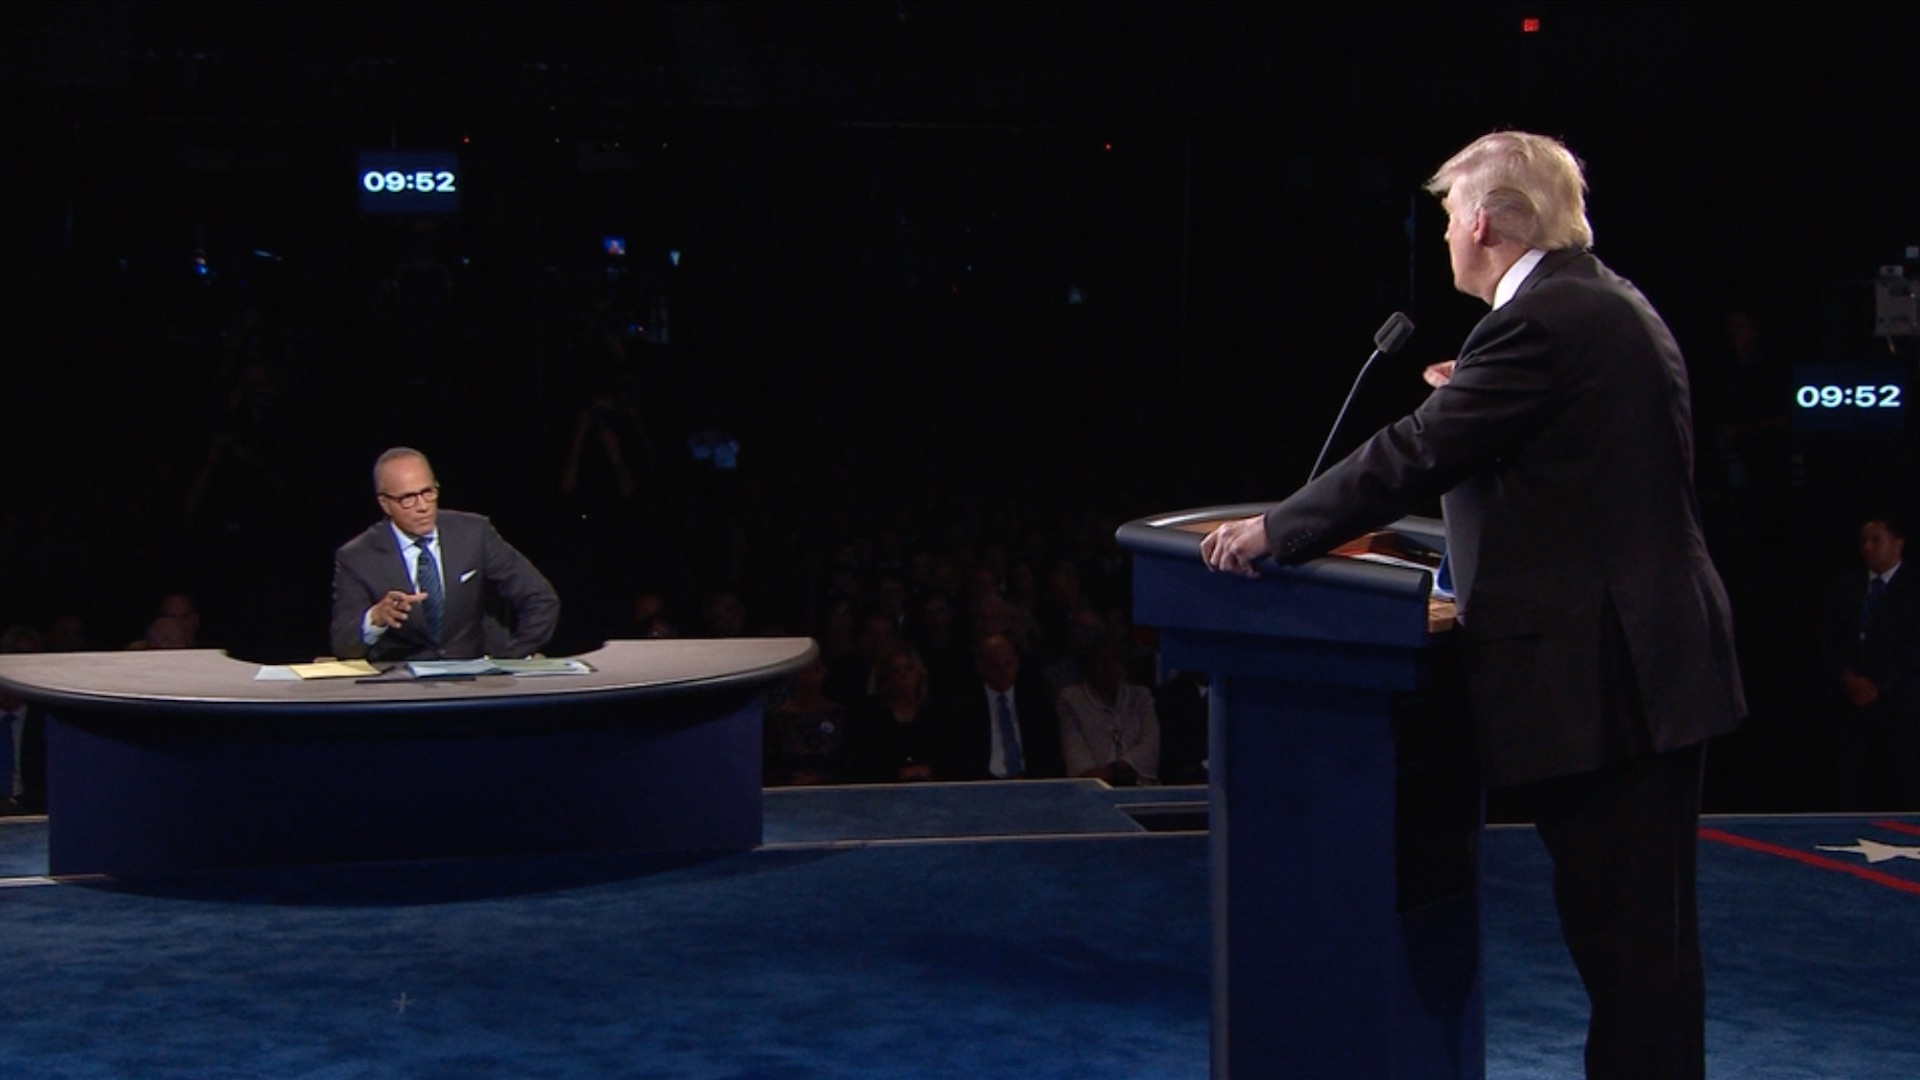 Trump vs. Clinton: Her jabs put him on the defensive in first debate